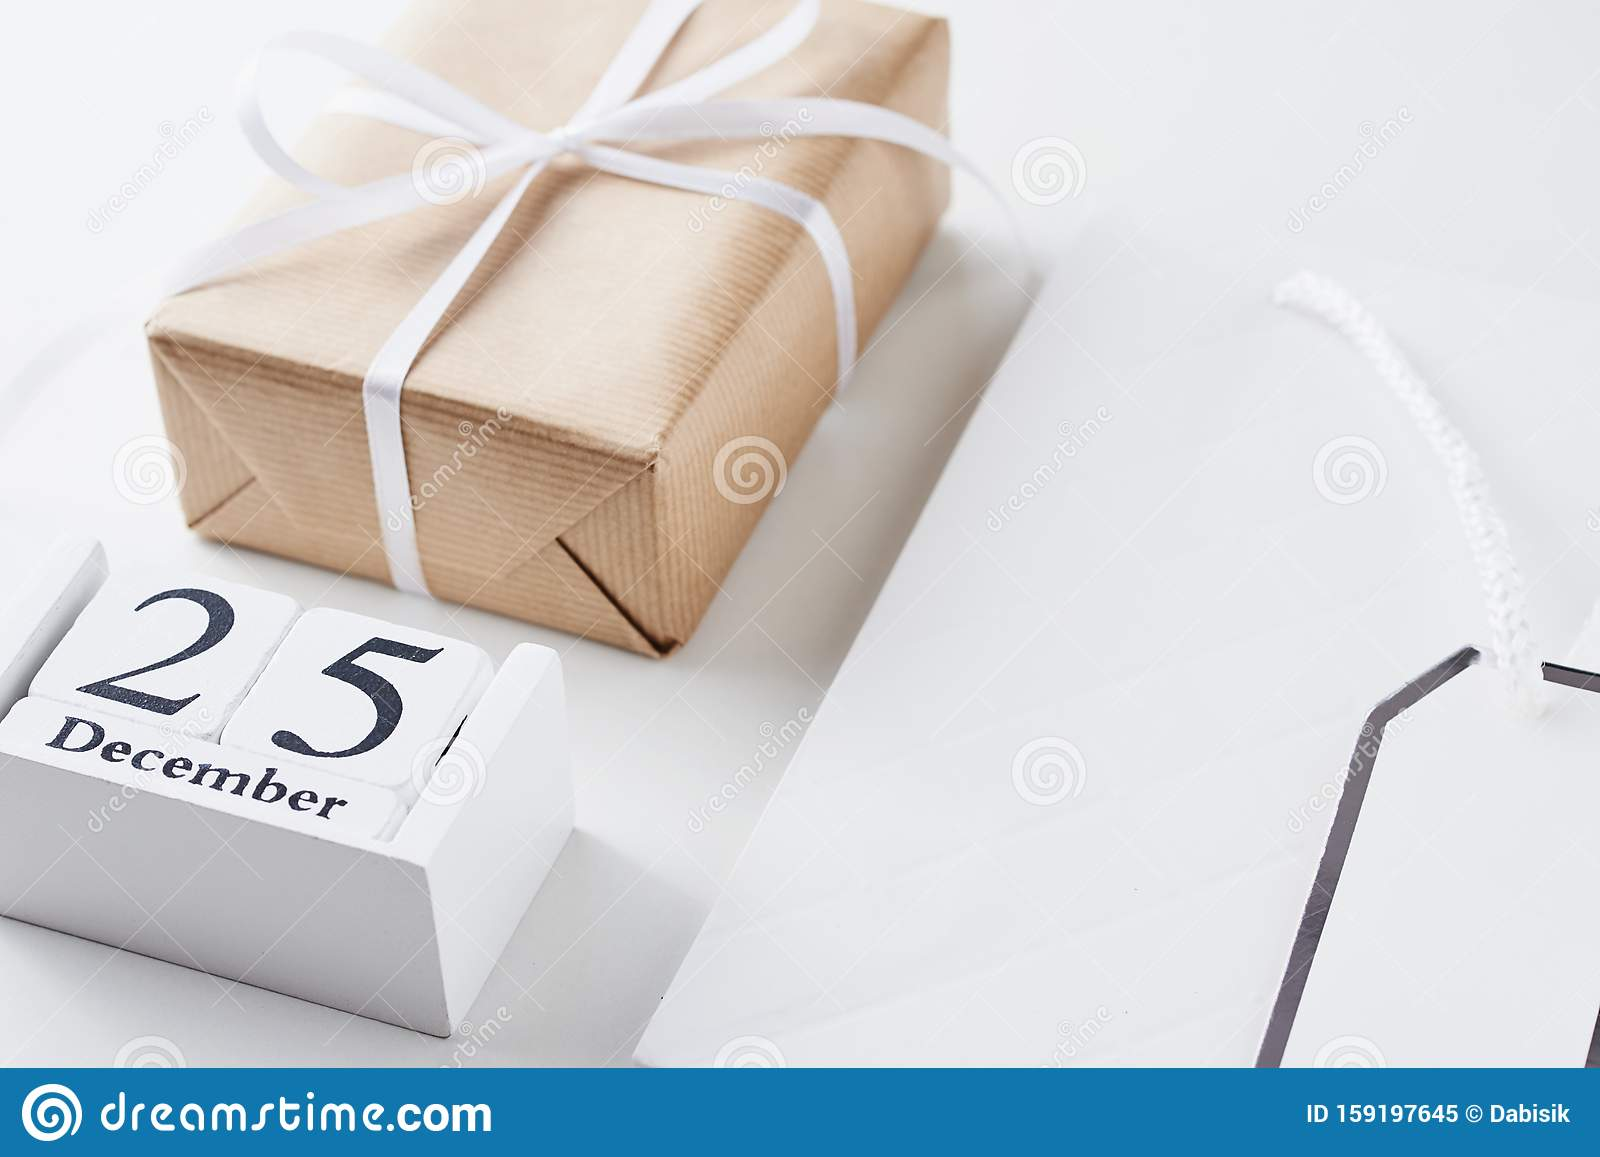 Christmas Presents For Family Or Friends Concept Stock Image